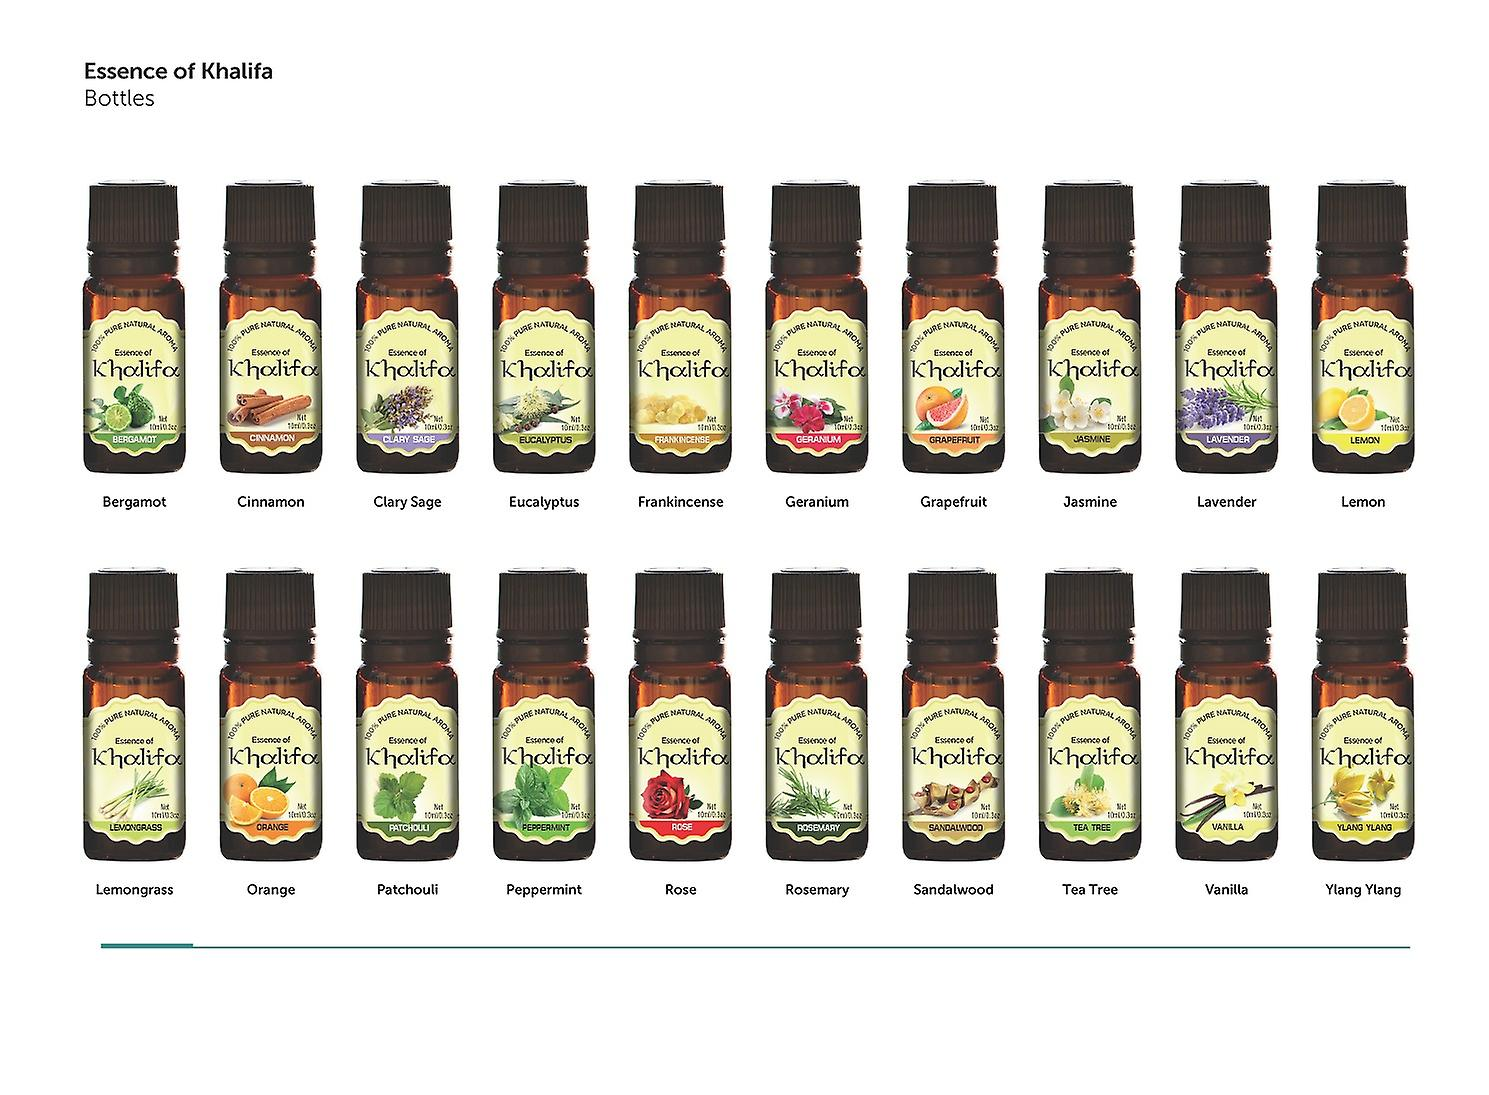 Essence Of Khalifa - 20pc Set of 10ml Luxury 100% Pure Aromatherapy Essential Oils - Therapeutic Grade Oil - Selection of the Top 20 with Guide and Recipe Booklet